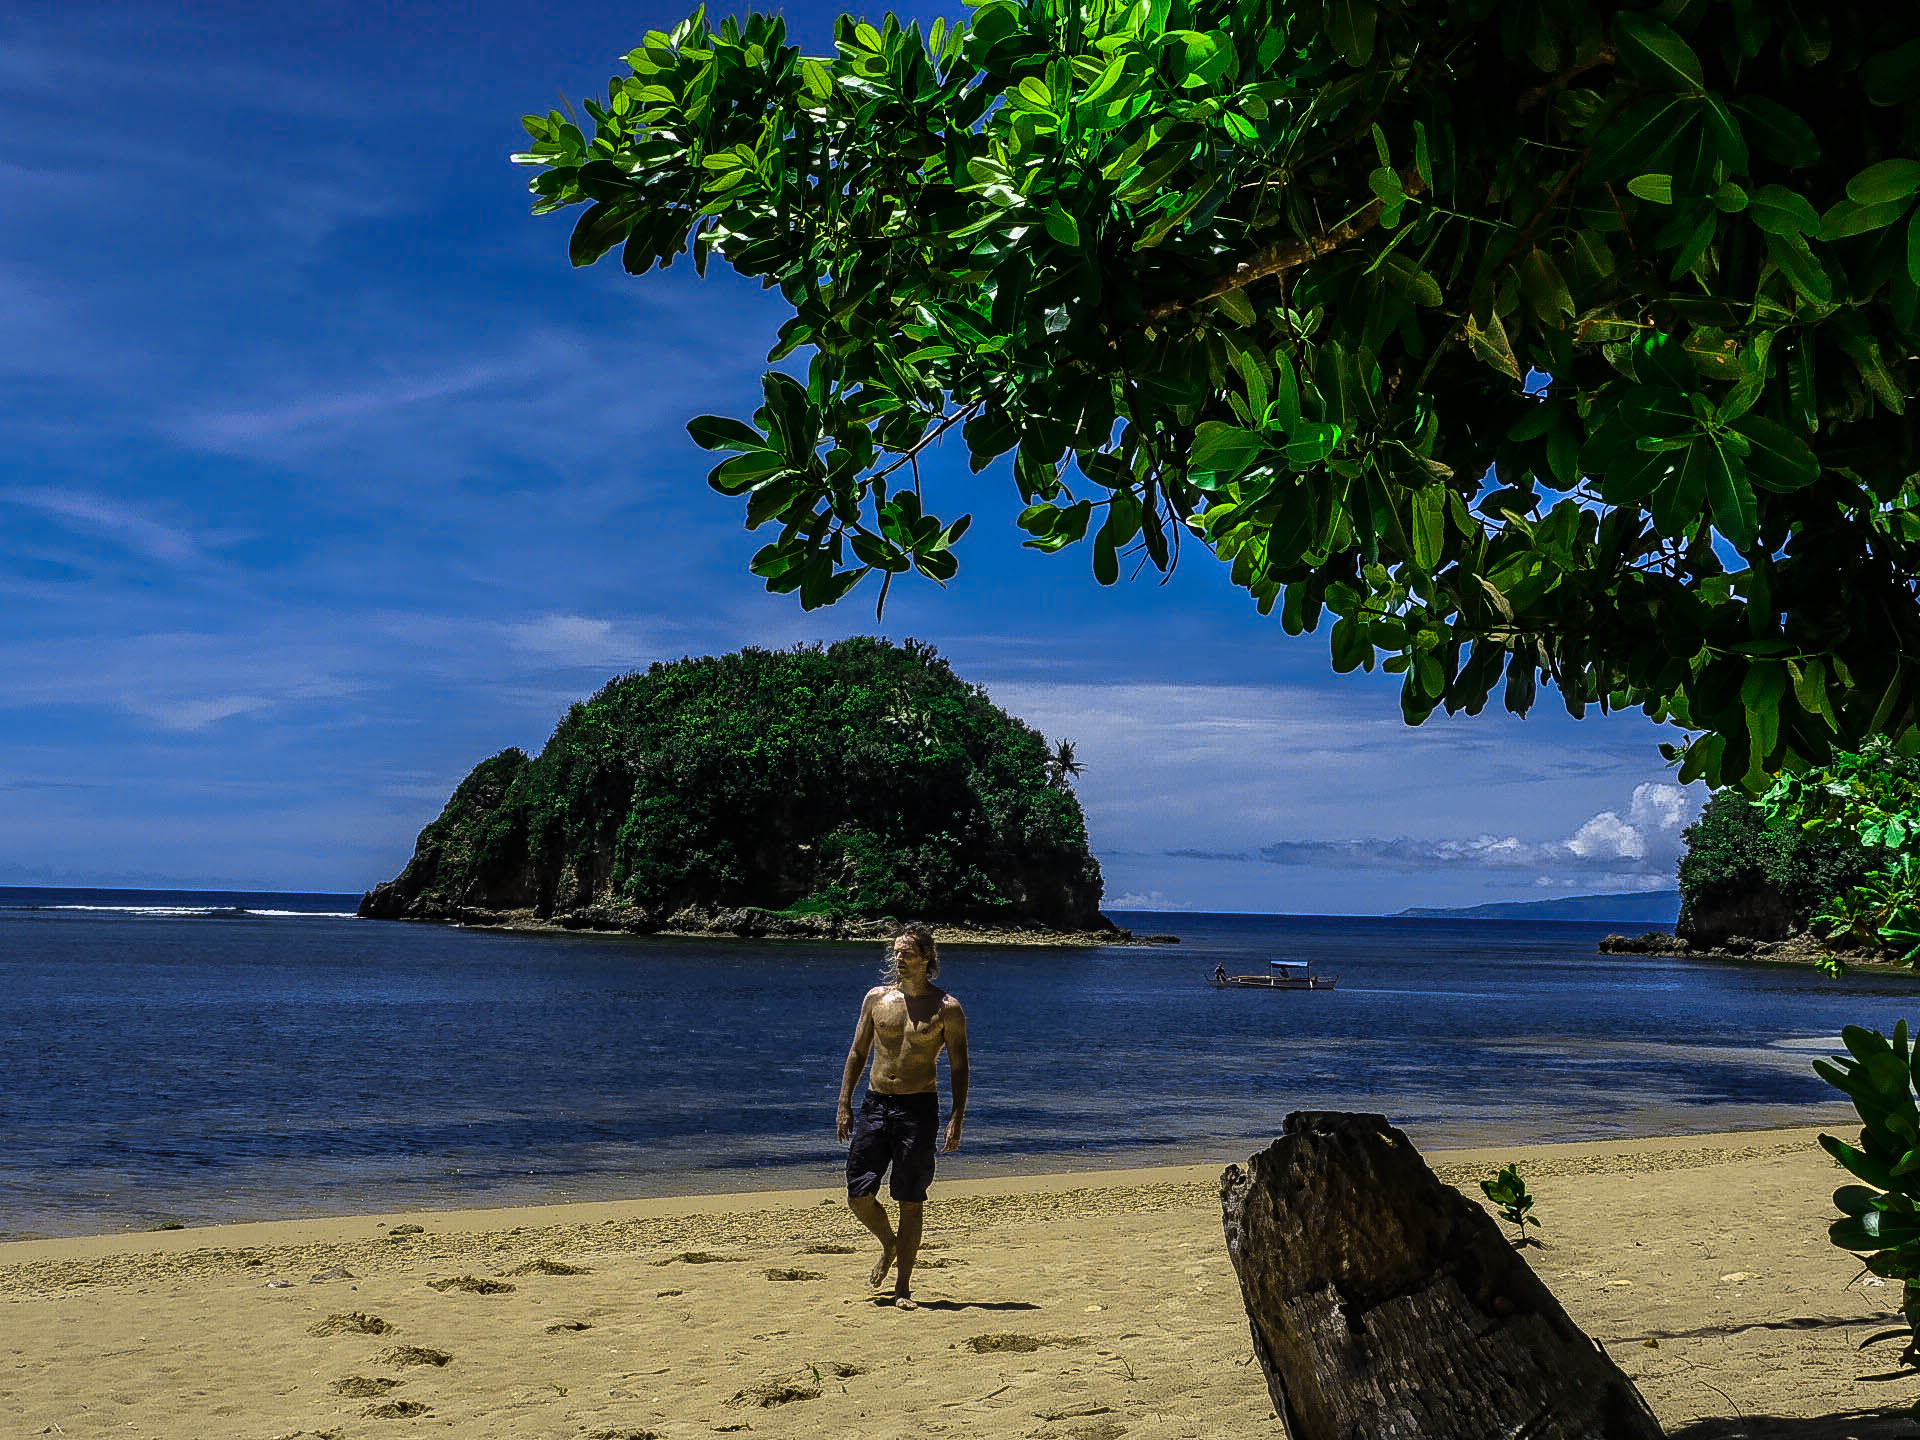 lenny through paradise at twin rock beach in catanduanes philippines